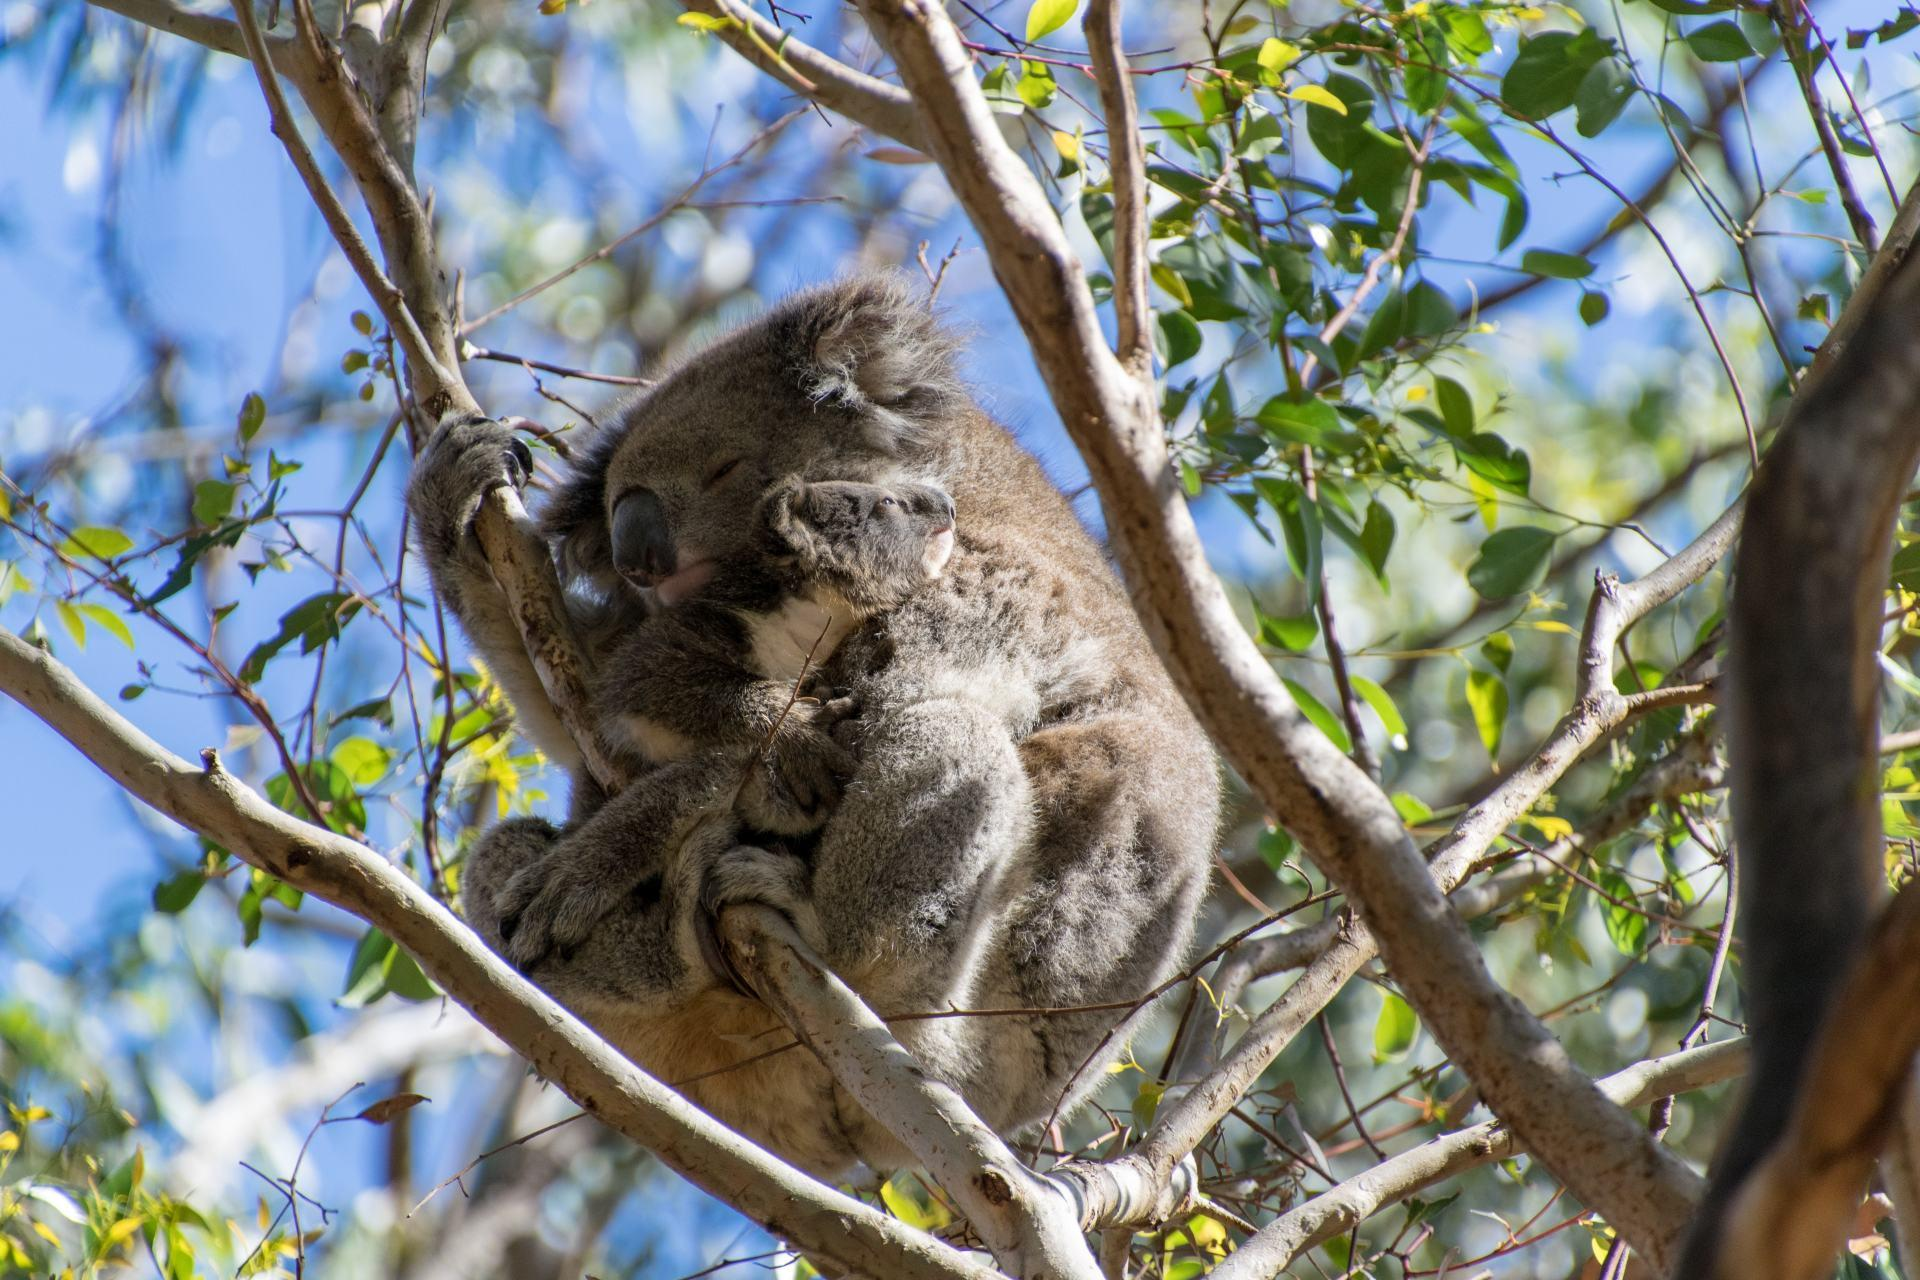 Discover the Unique Wildlife & Landscapes of South Australia on this 5-Day Adventure